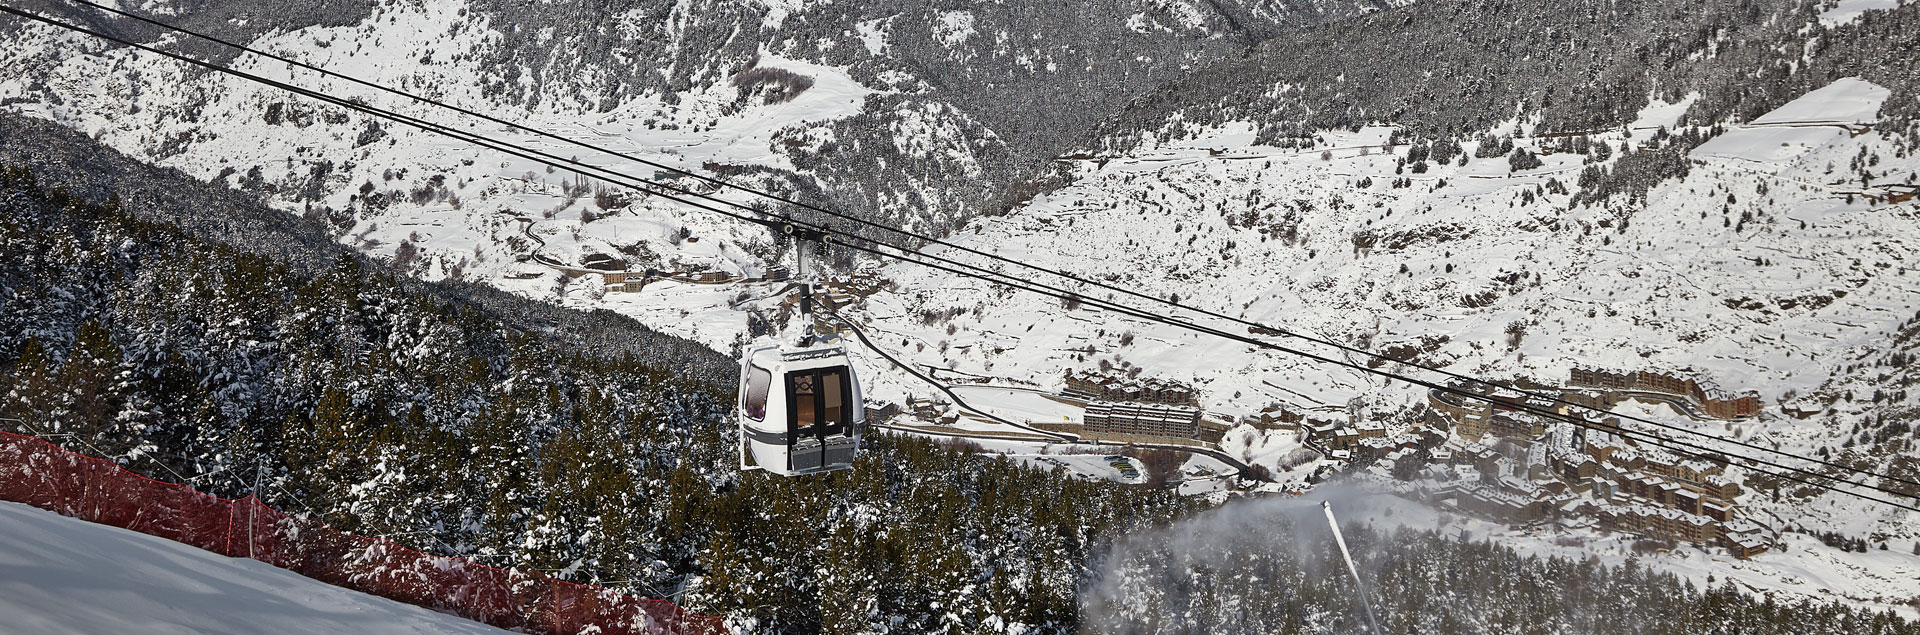 More than 200 km of ski slopes Grandvalira